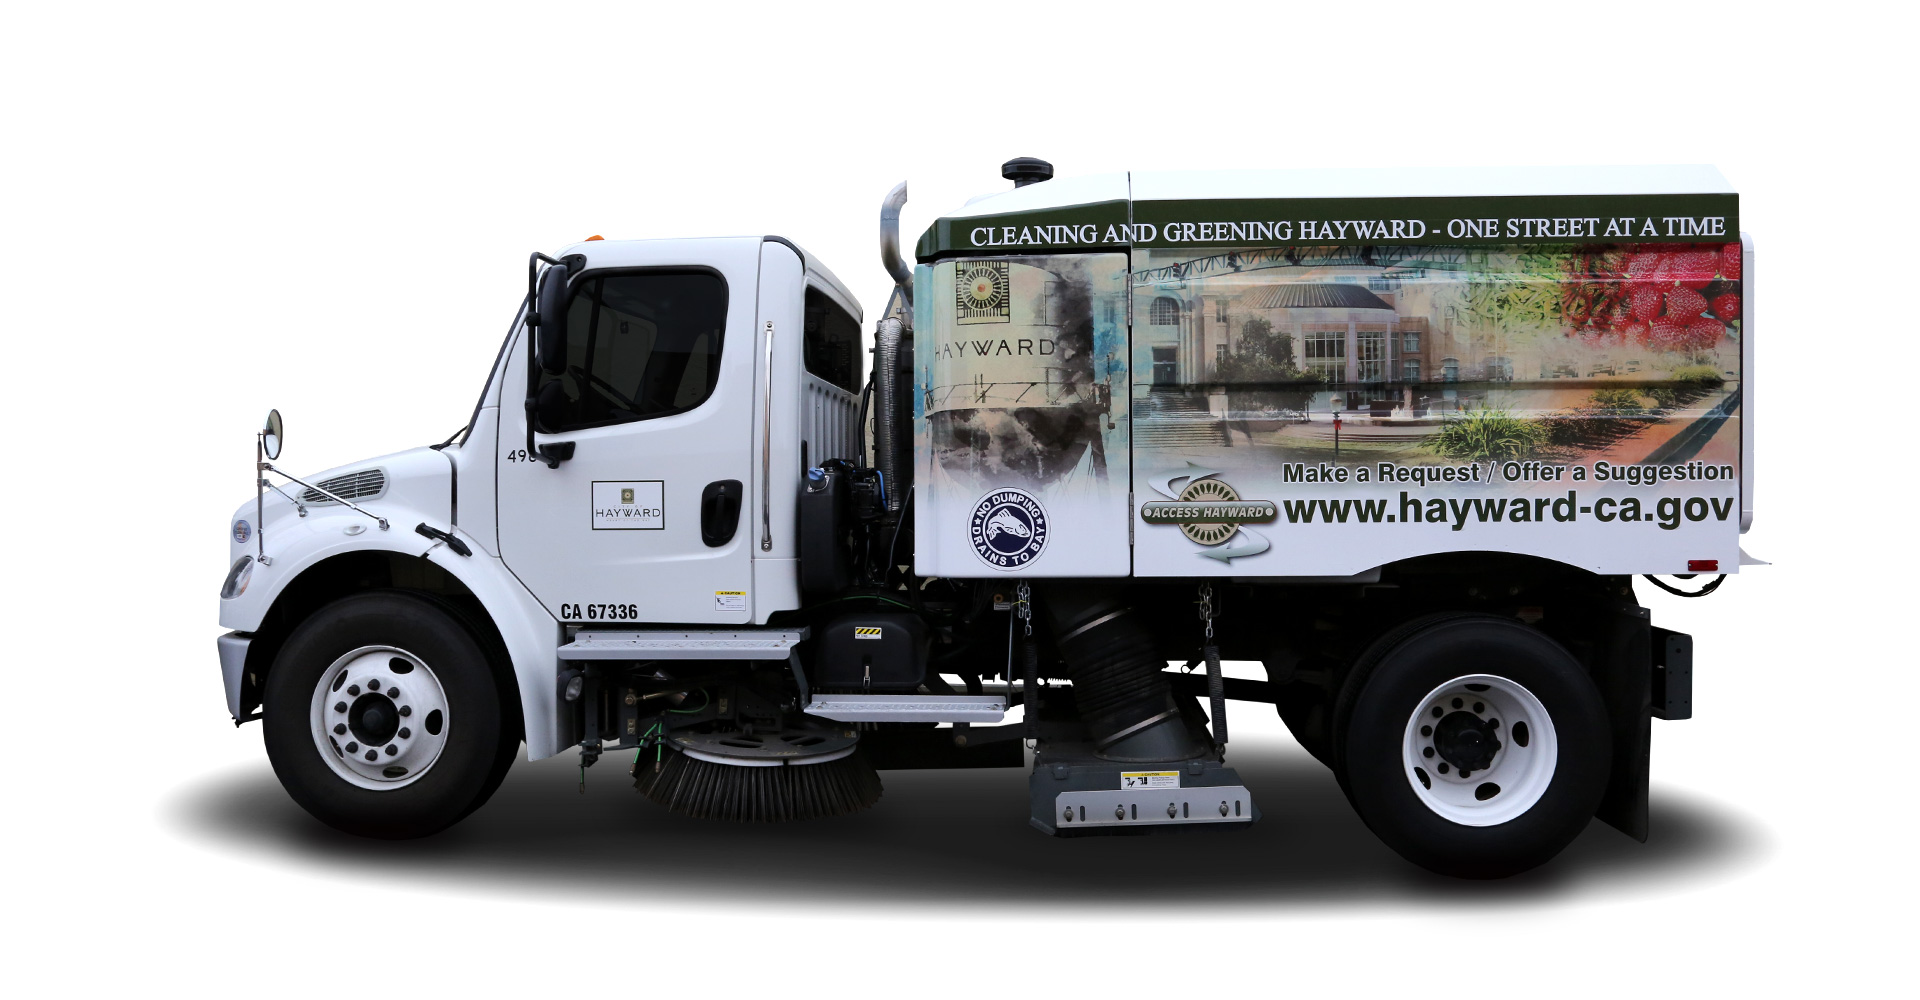 city of hayward street sweeper 02